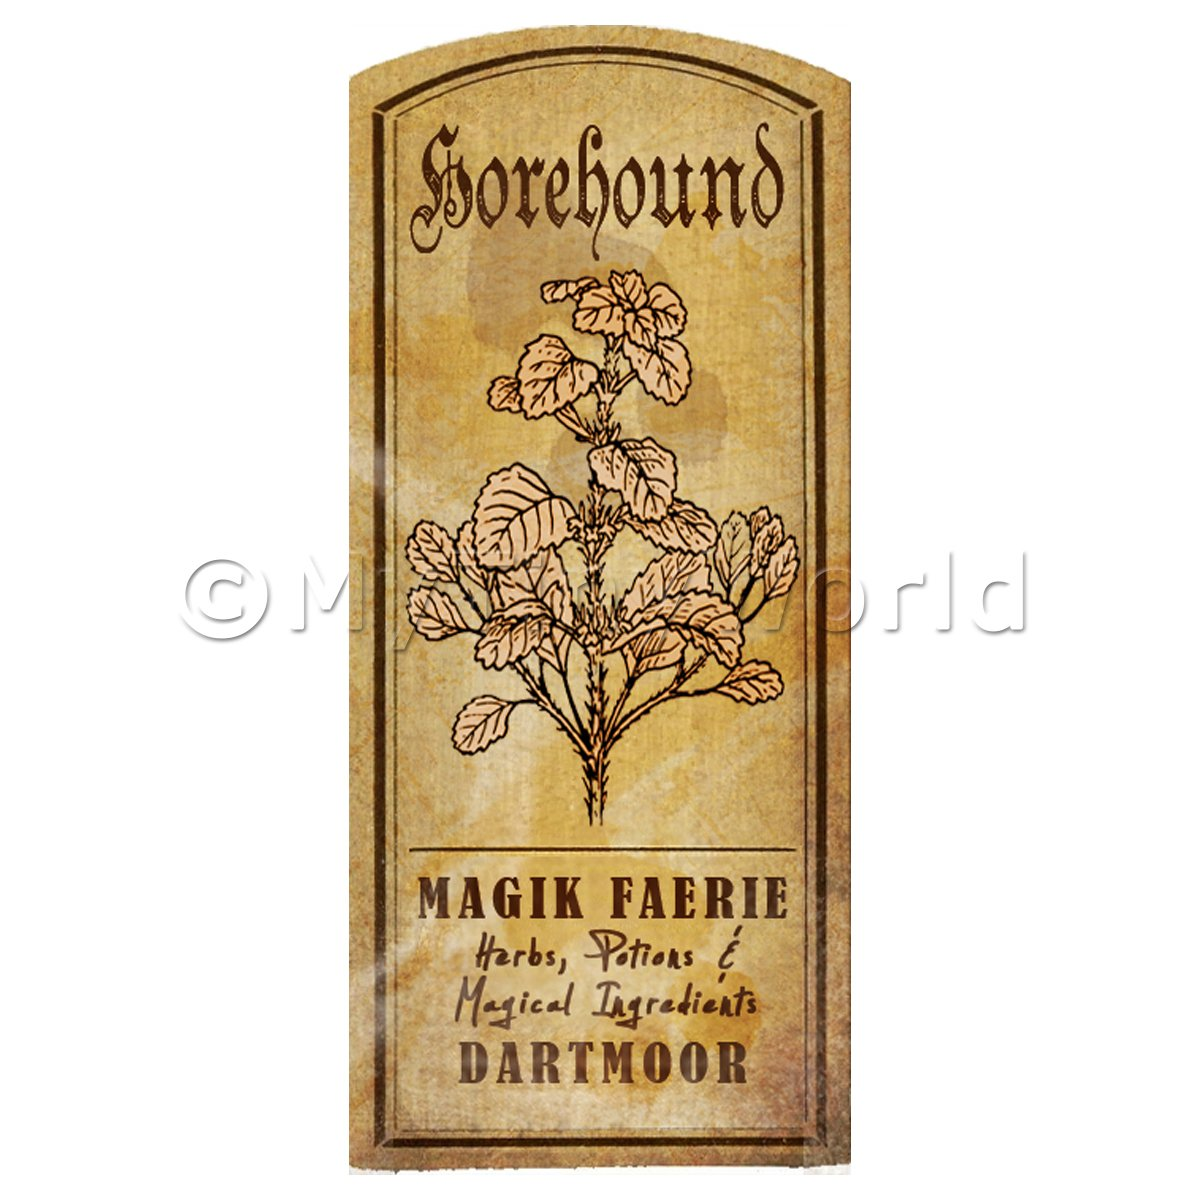 Dolls House Herbalist/Apothecary Horehound Herb Short Sepia Label